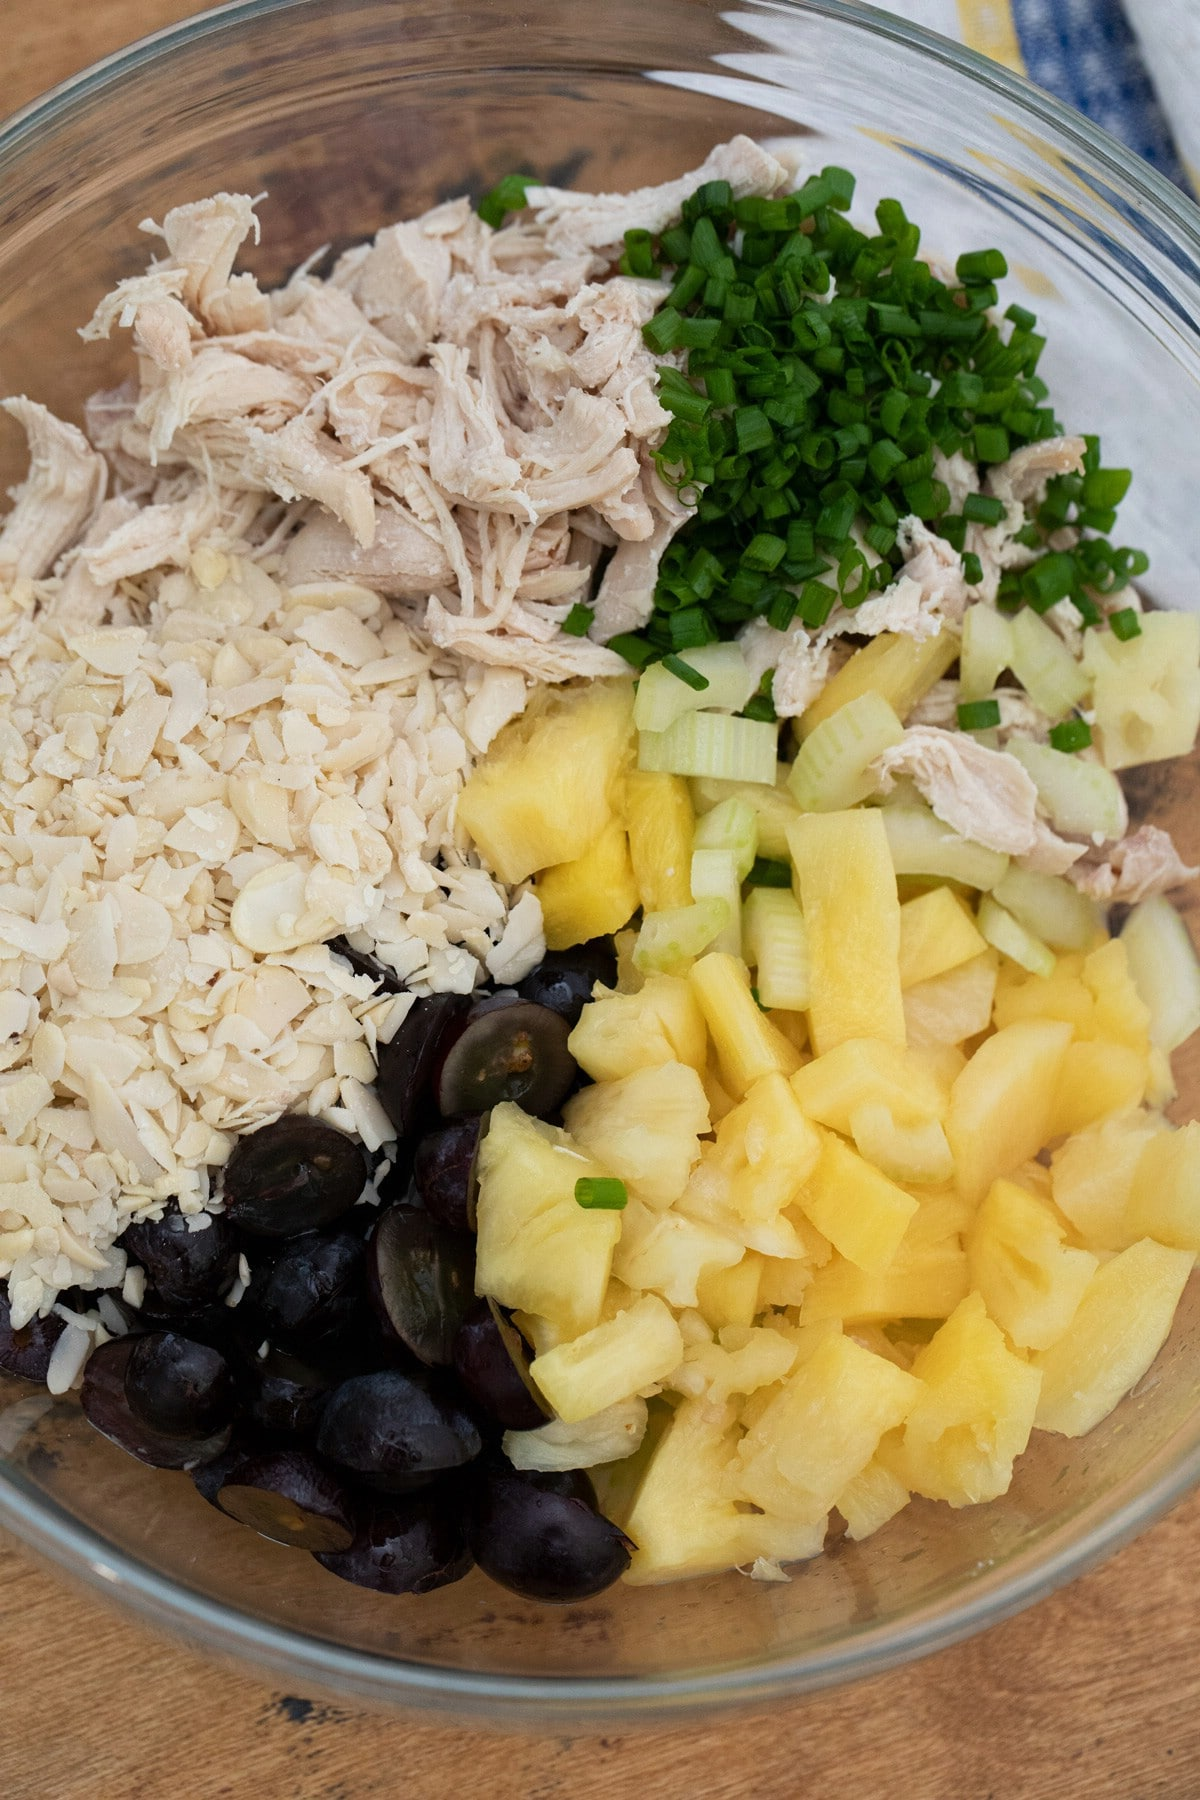 Large glass bowl filled with chicken, grapes, pineapple, and onions